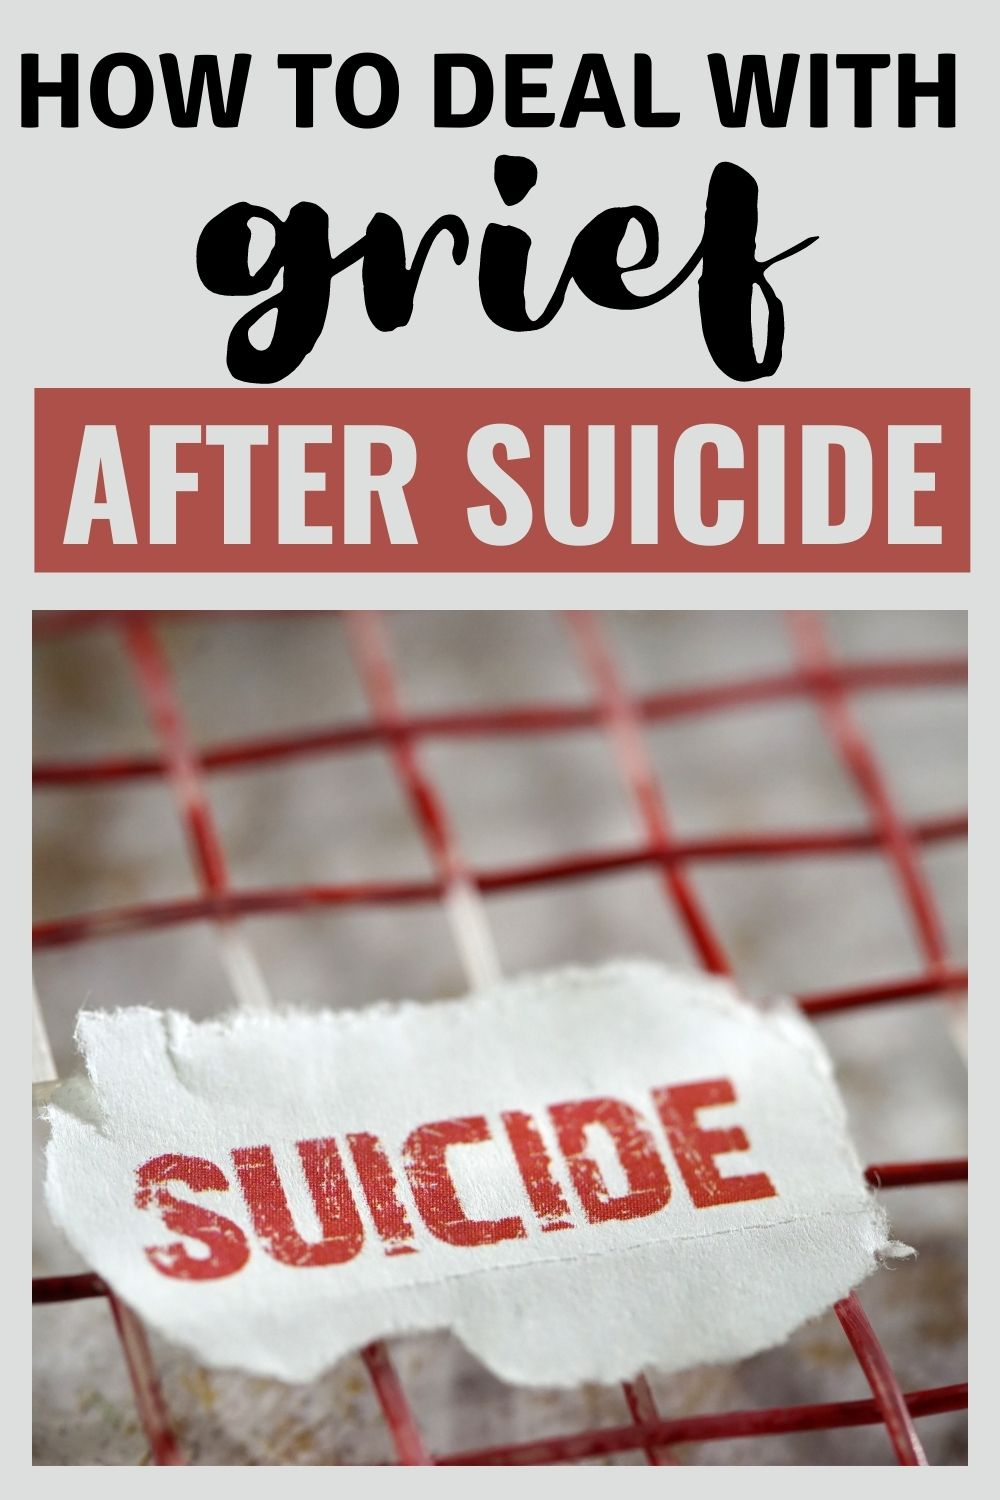 How to deal with grief after suicide